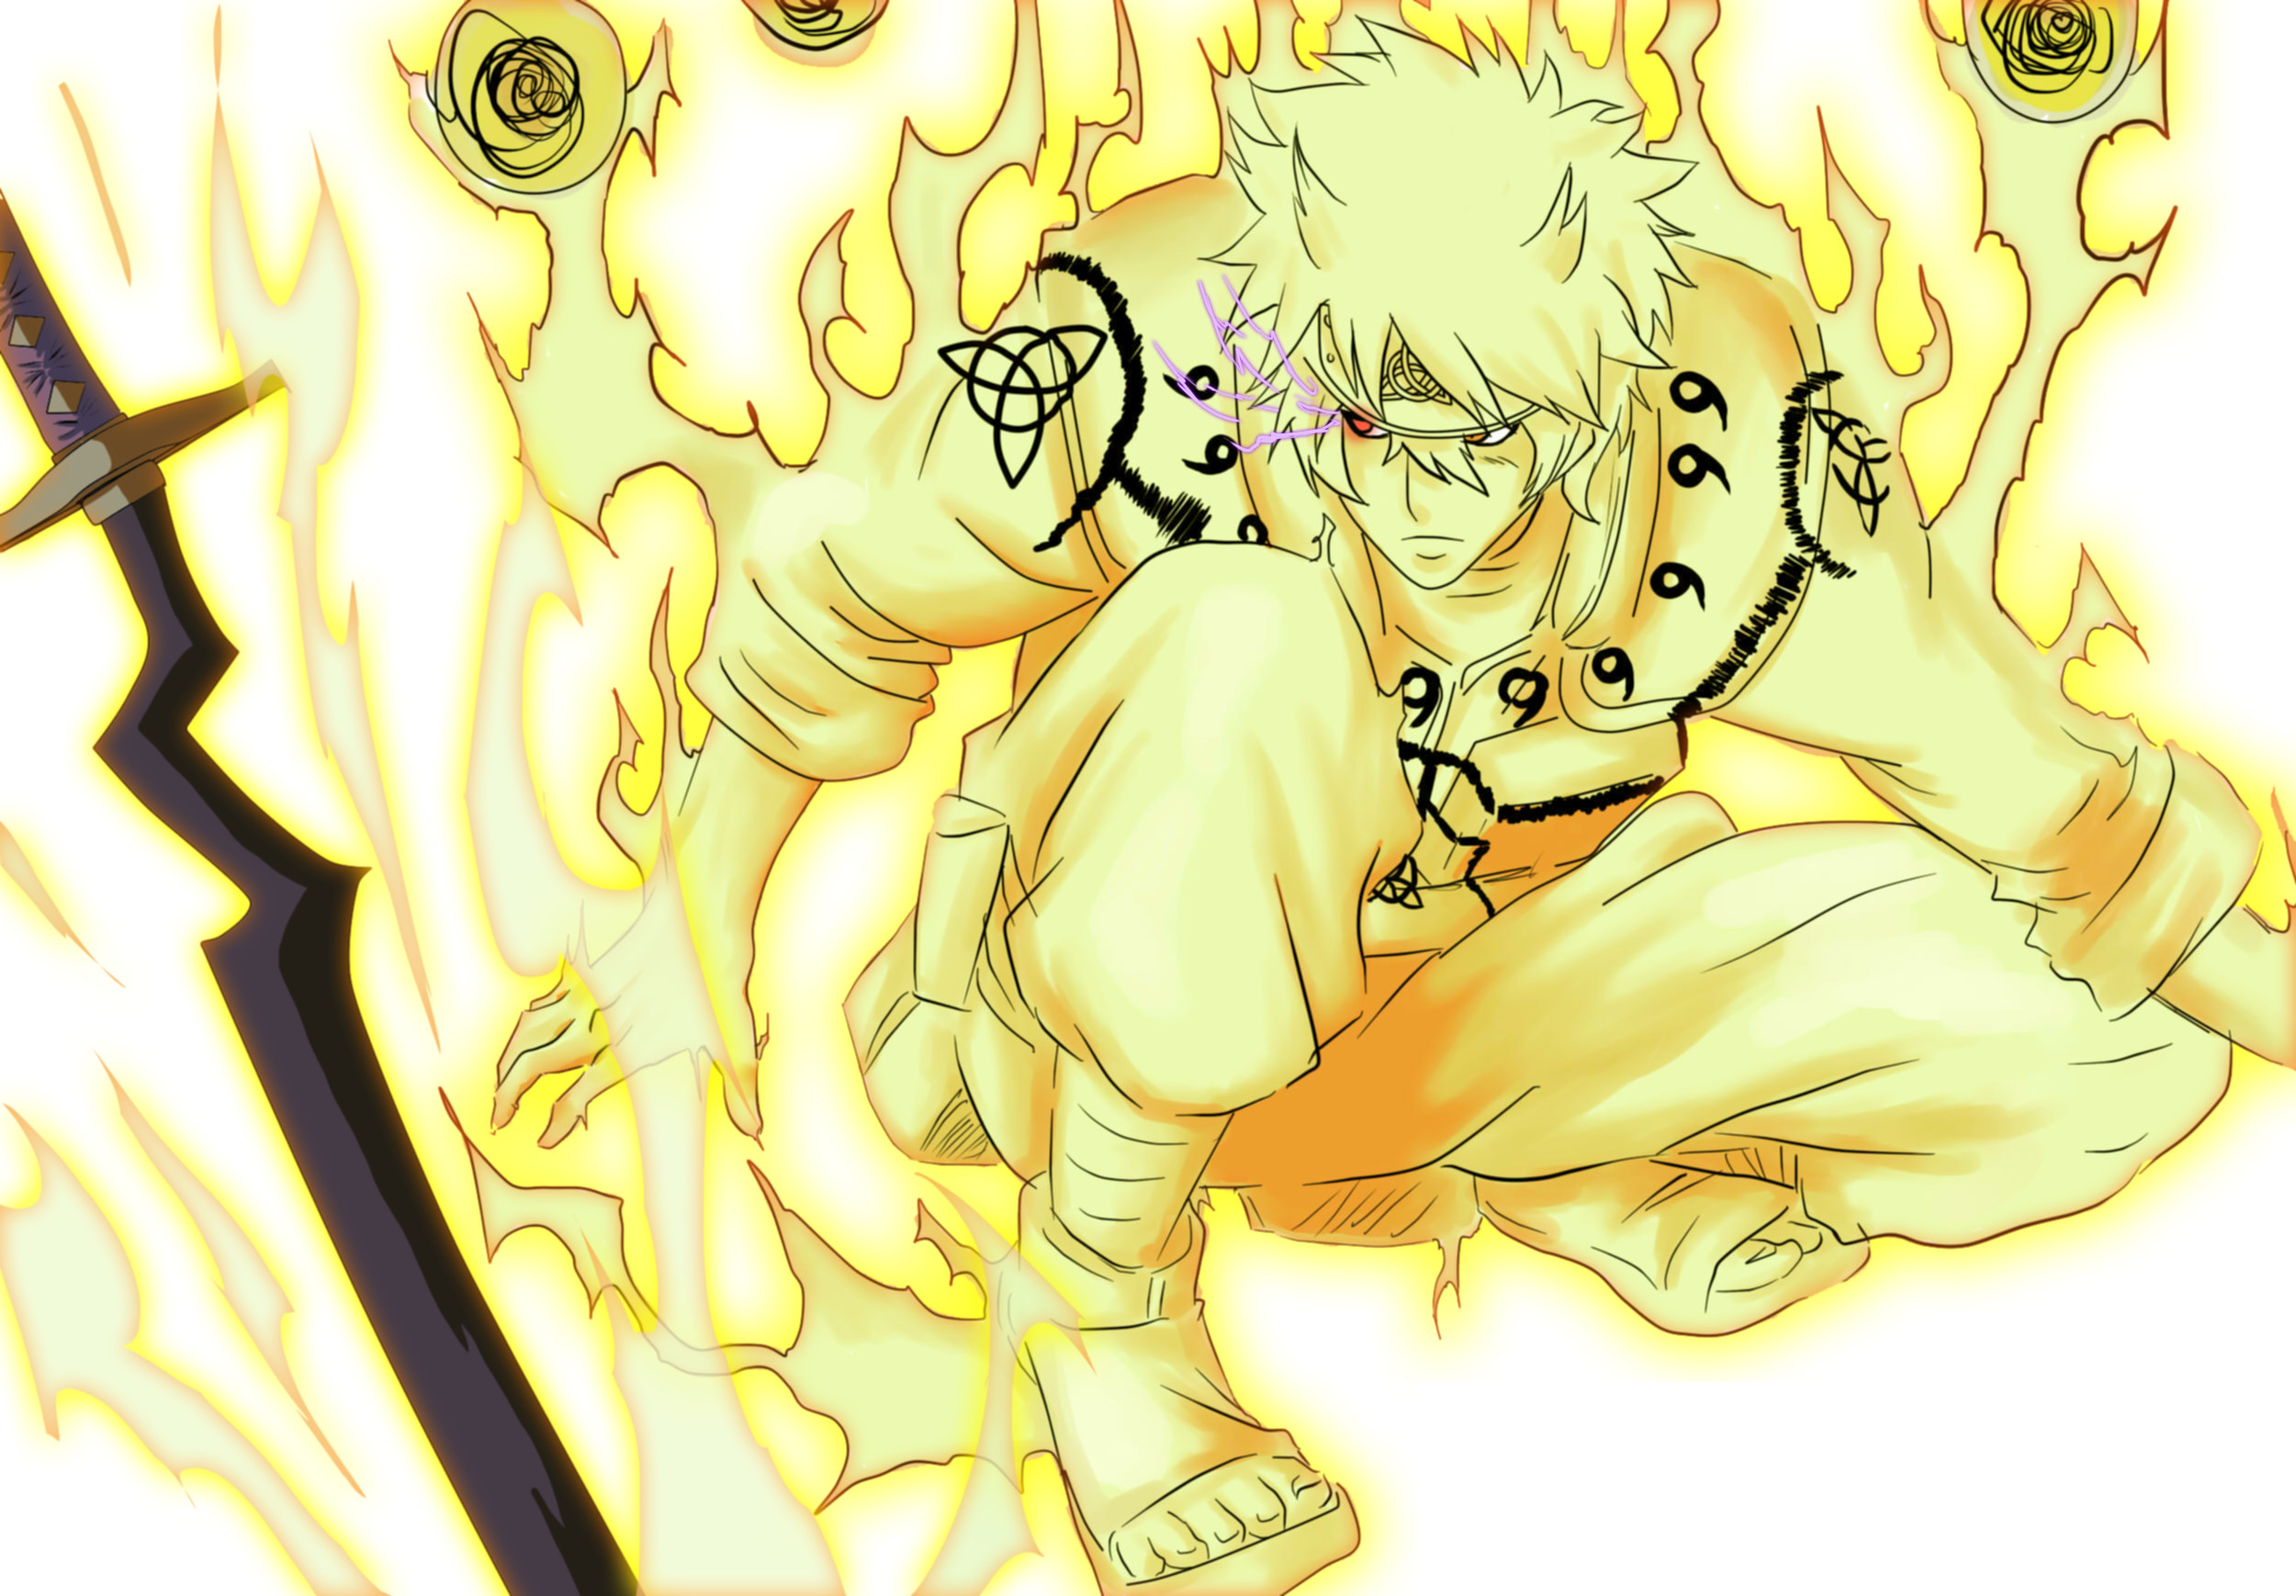 Naruto Full Nine Tails Form Images & Pictures Becuo